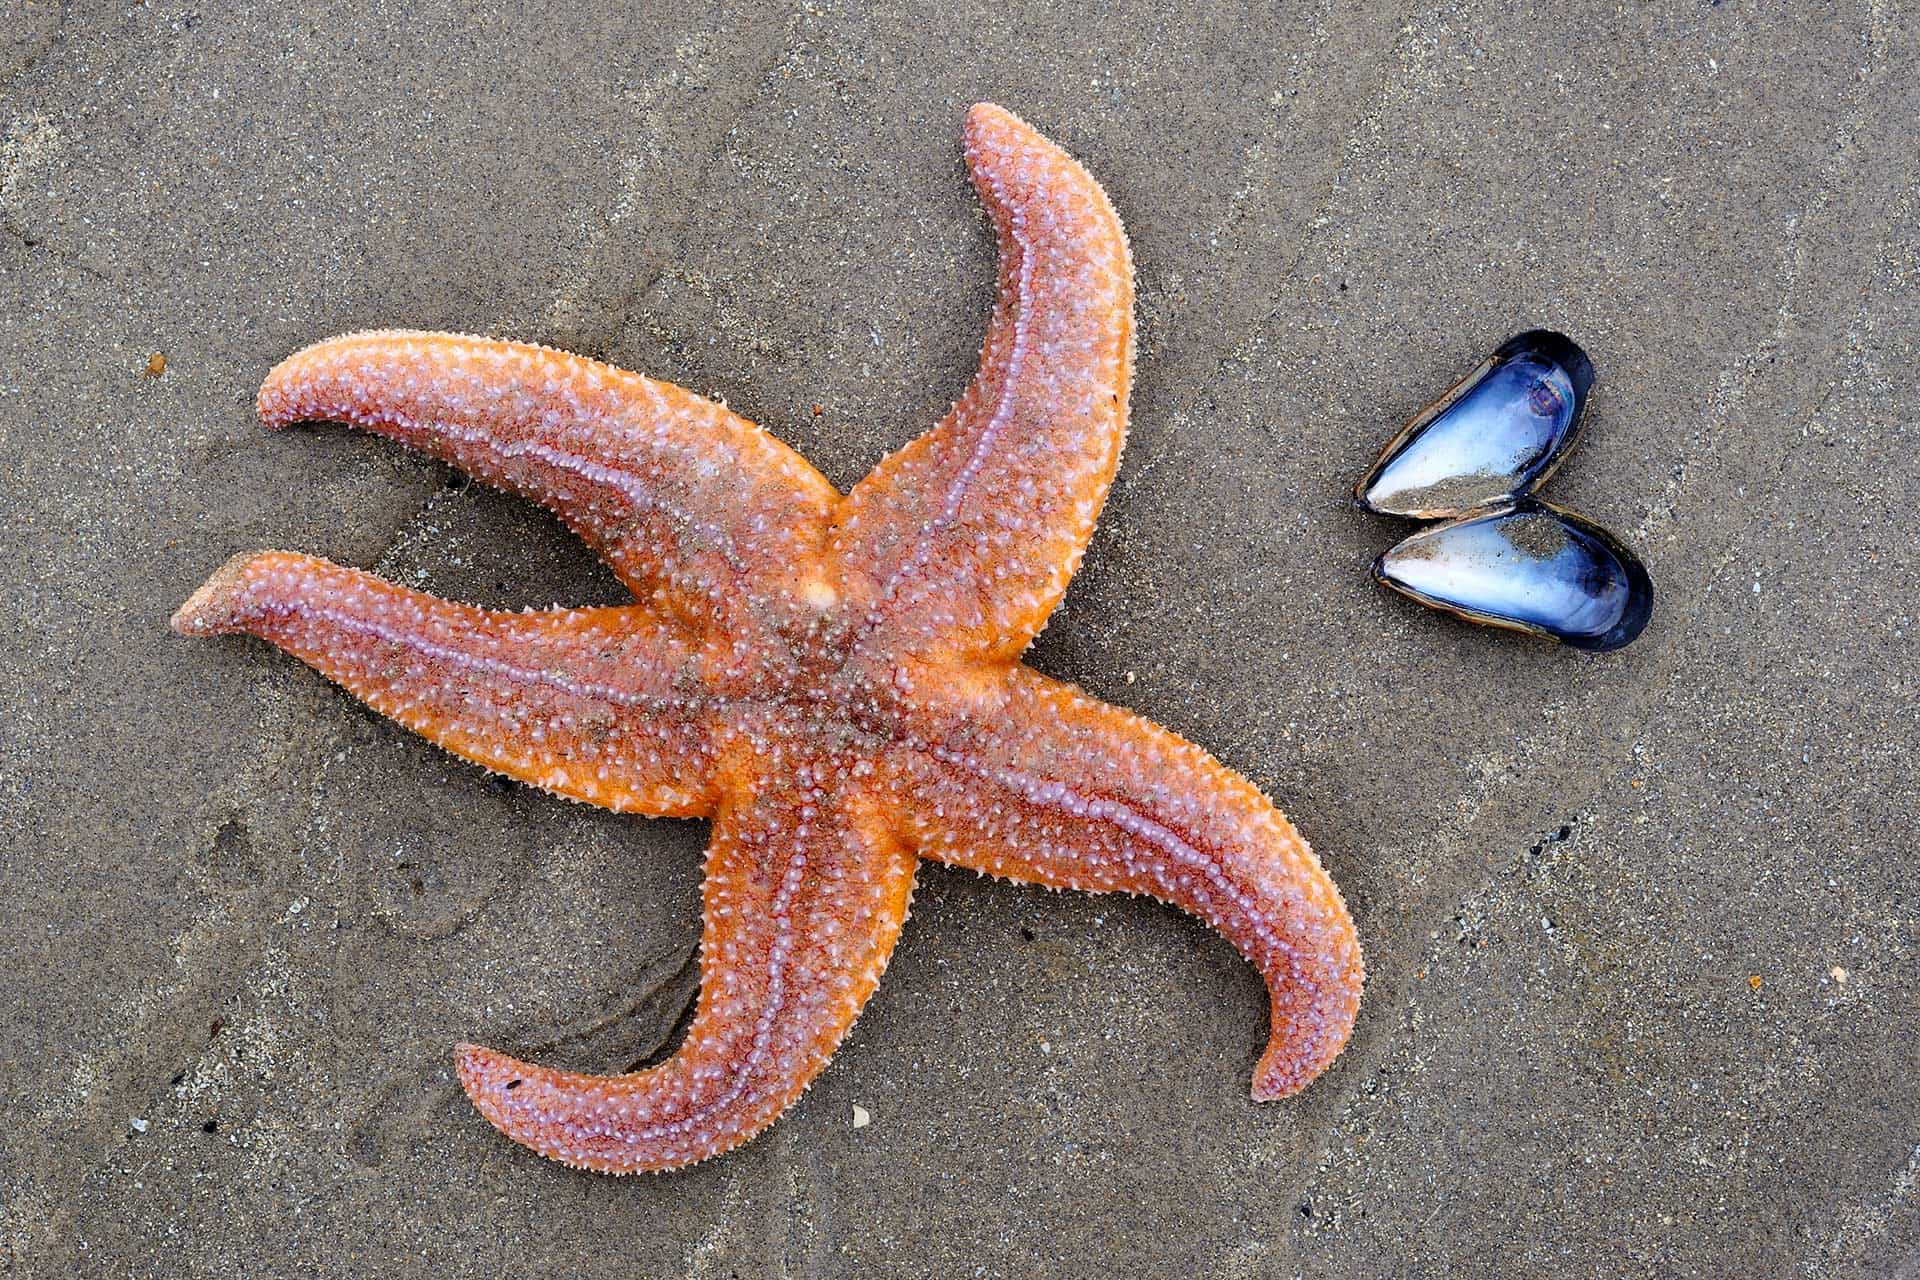 sea star on a beach, with empty mussel shell